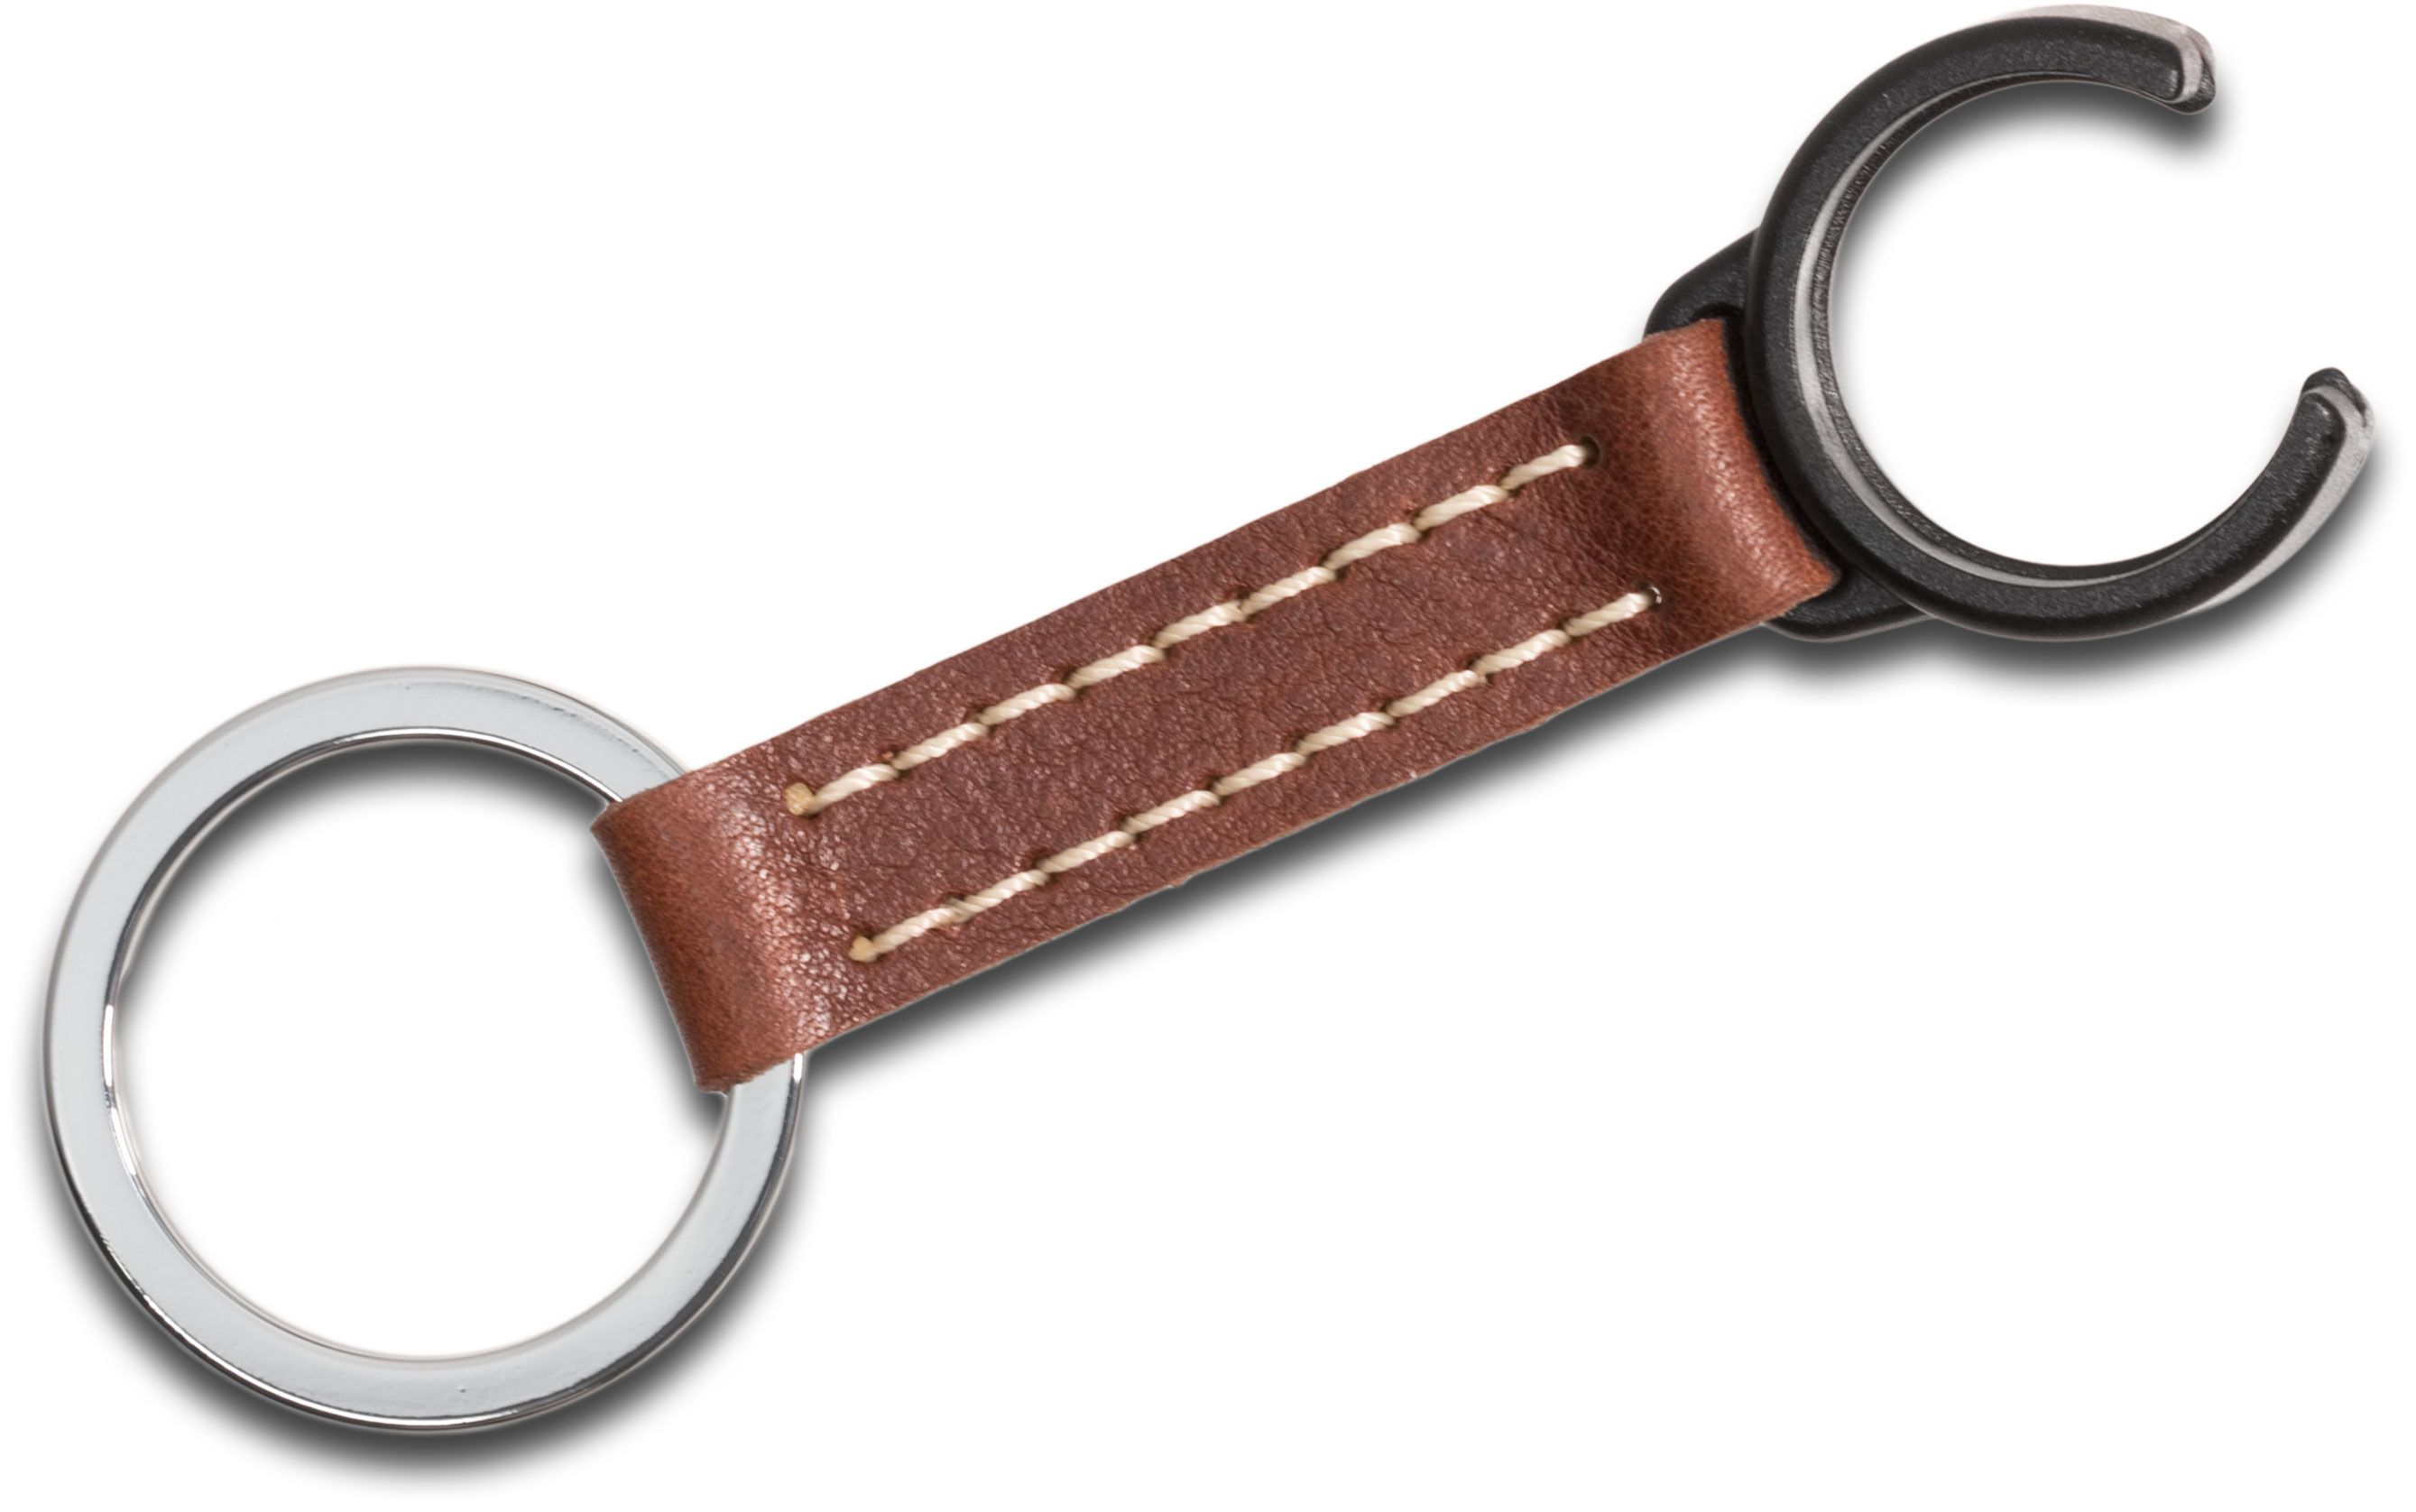 ASP Concealable Baton Keyring Clip, Brown